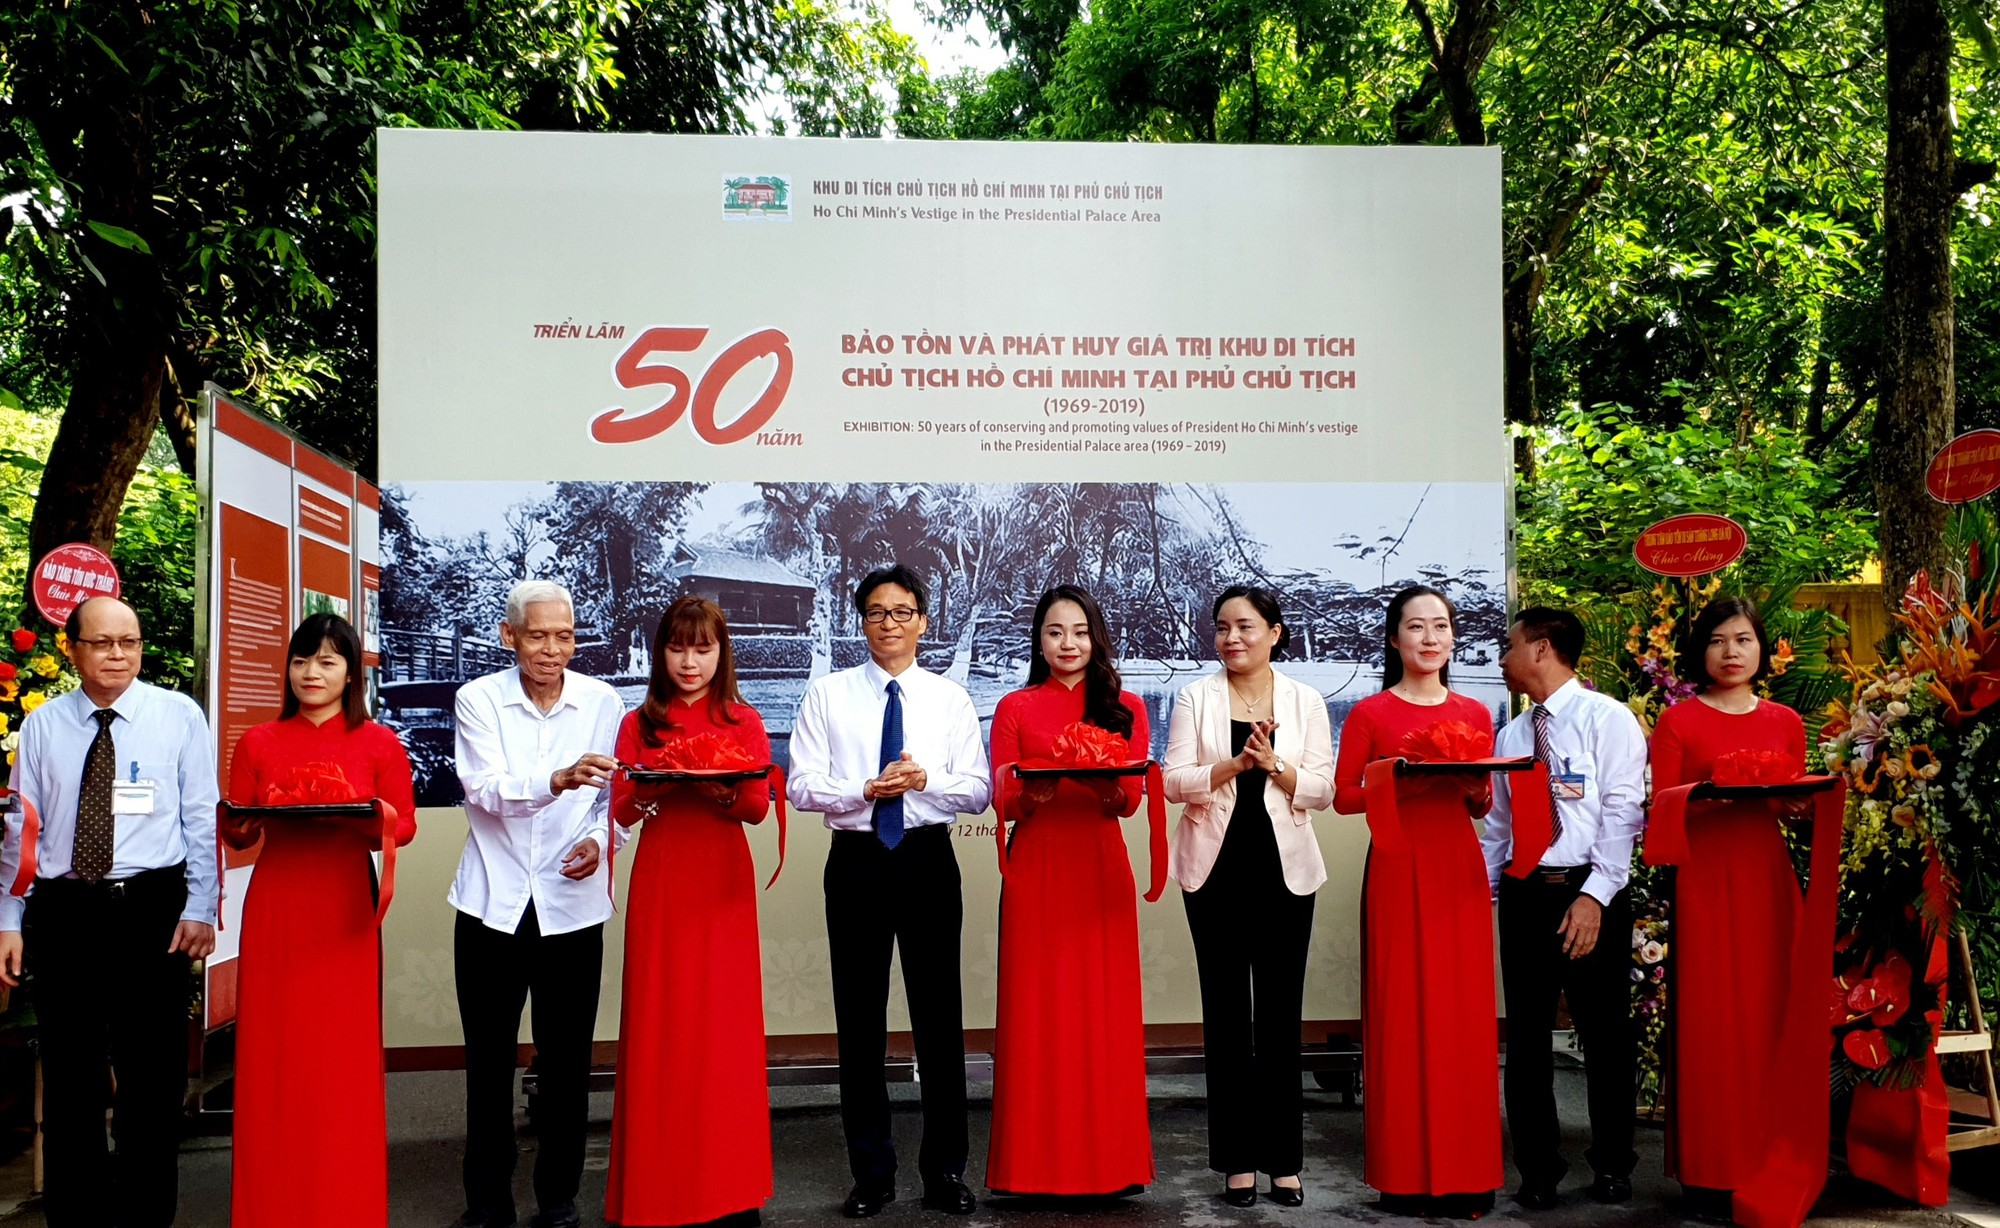 Over 200 photos on President Ho Chi Minh Relic Complex on display